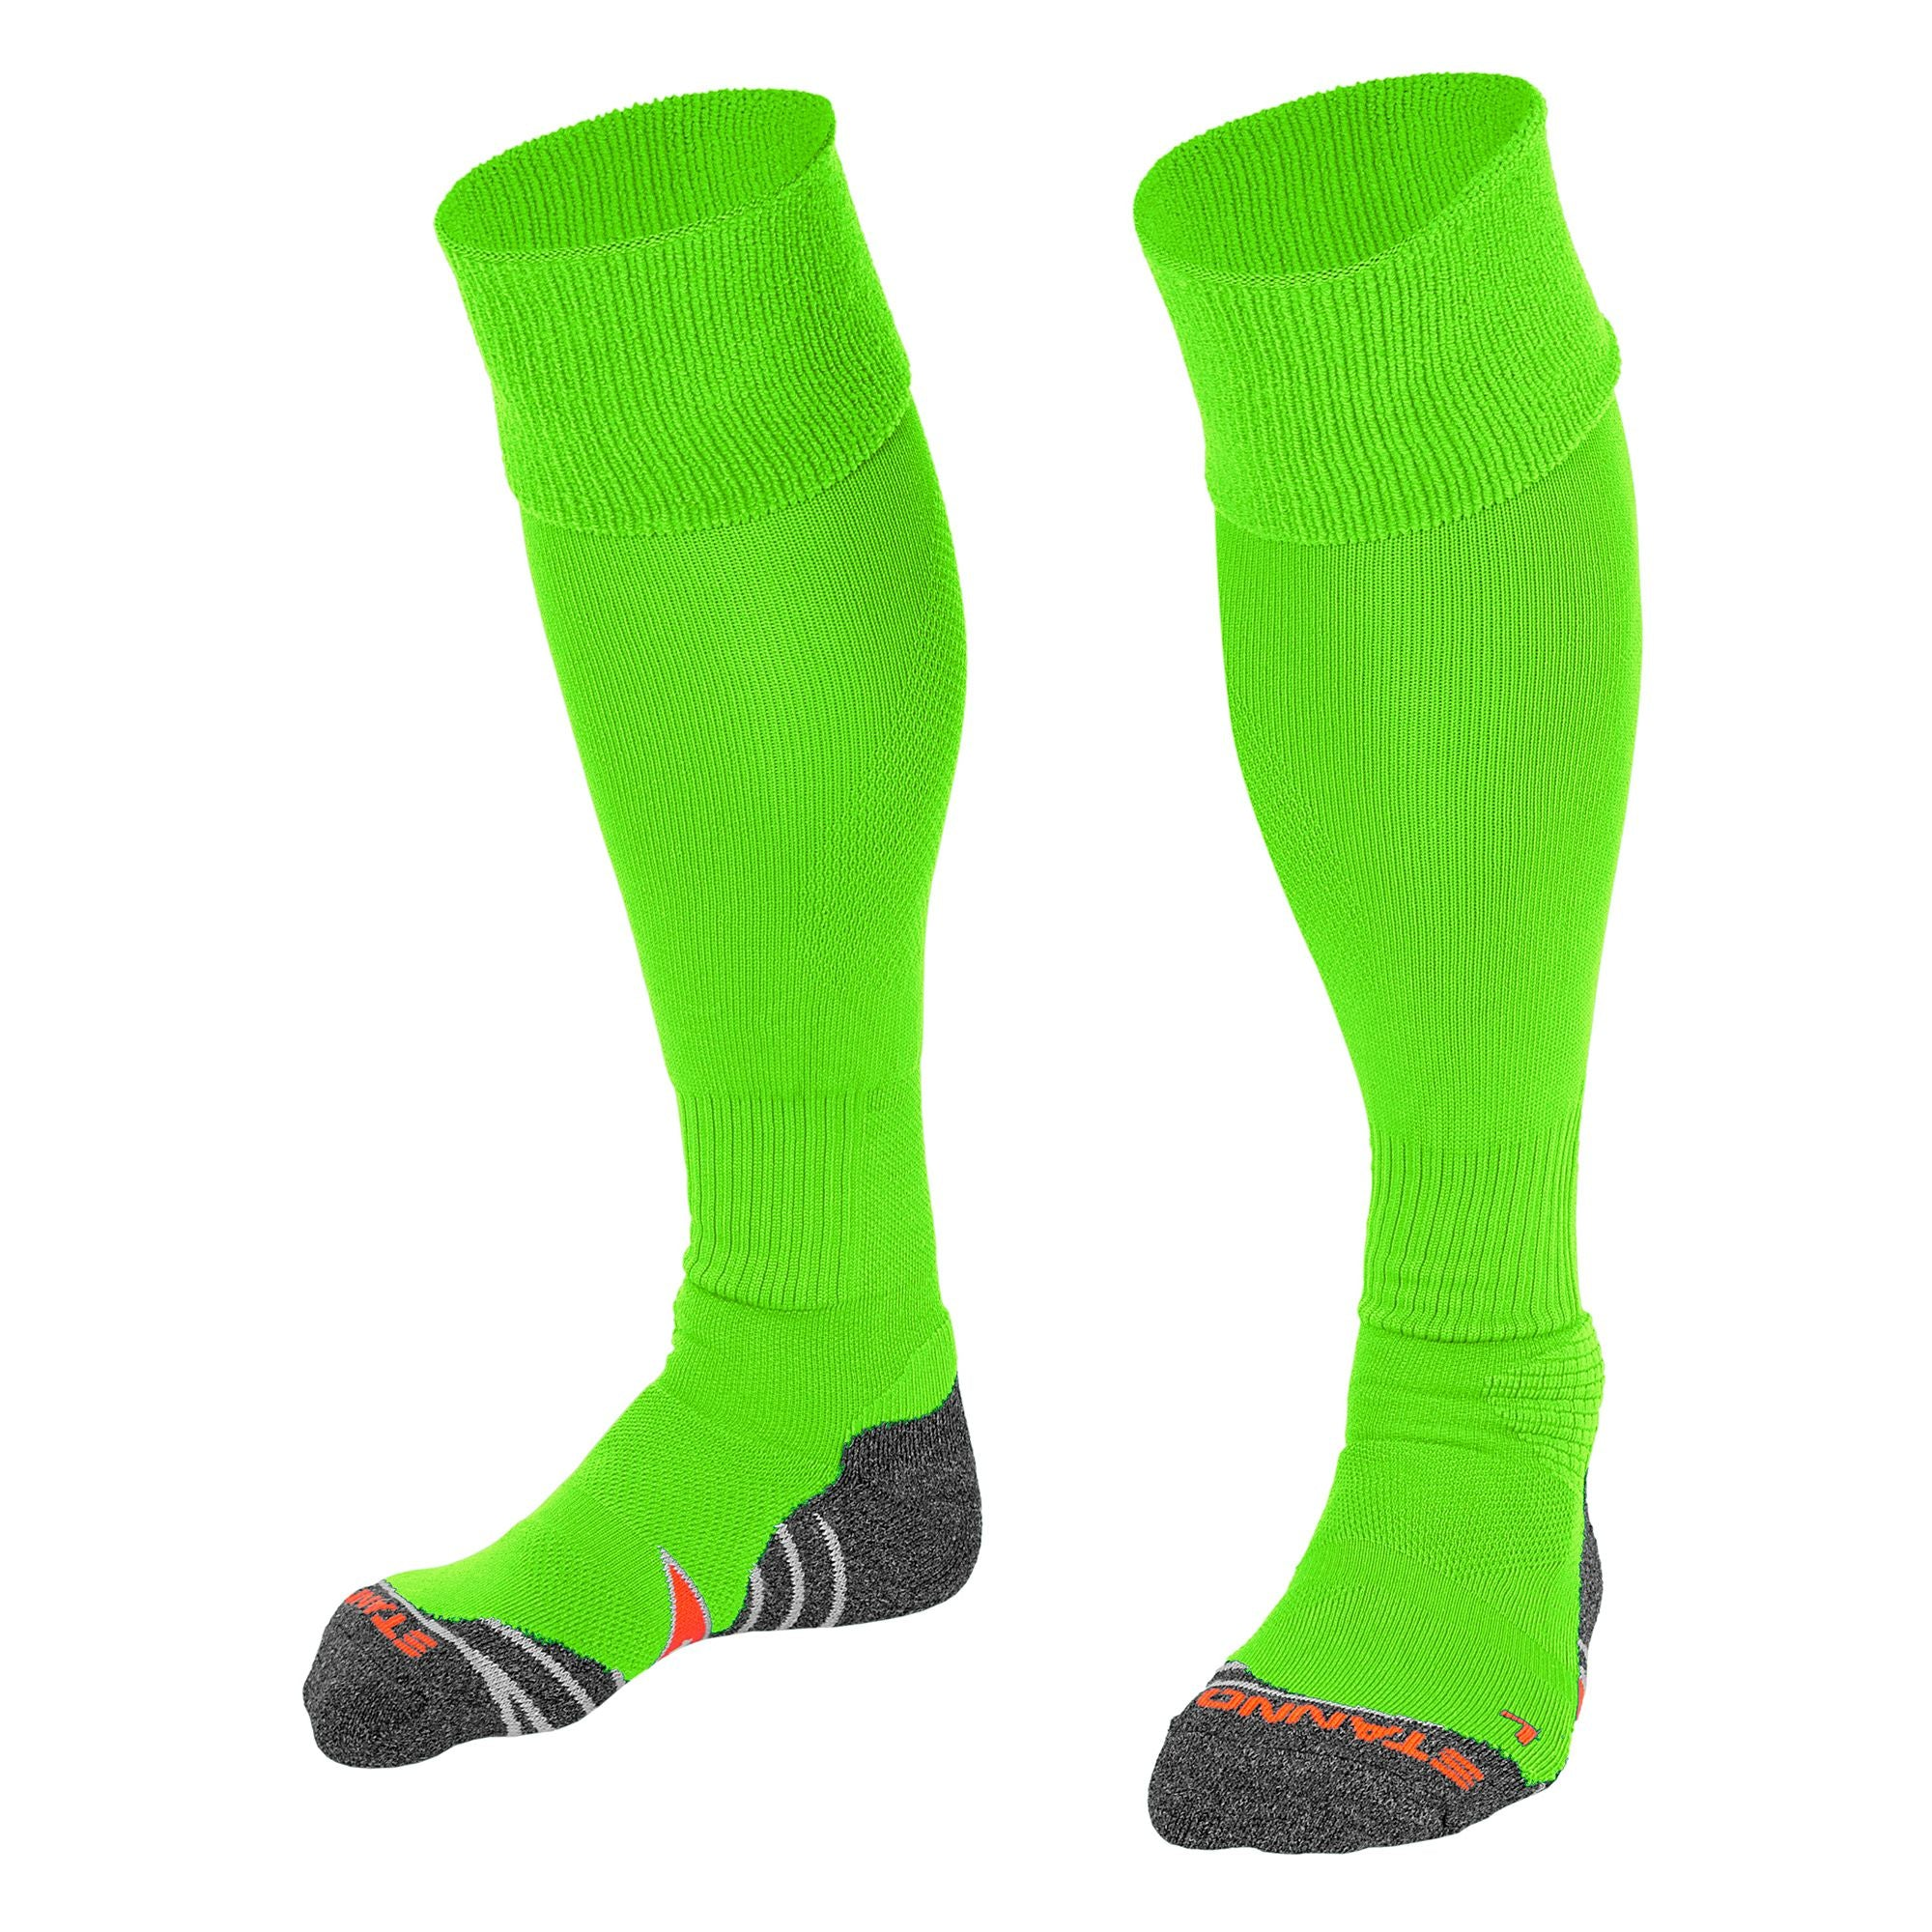 Stanno Uni Sock II football sock in lime green with grey, white and orange sole